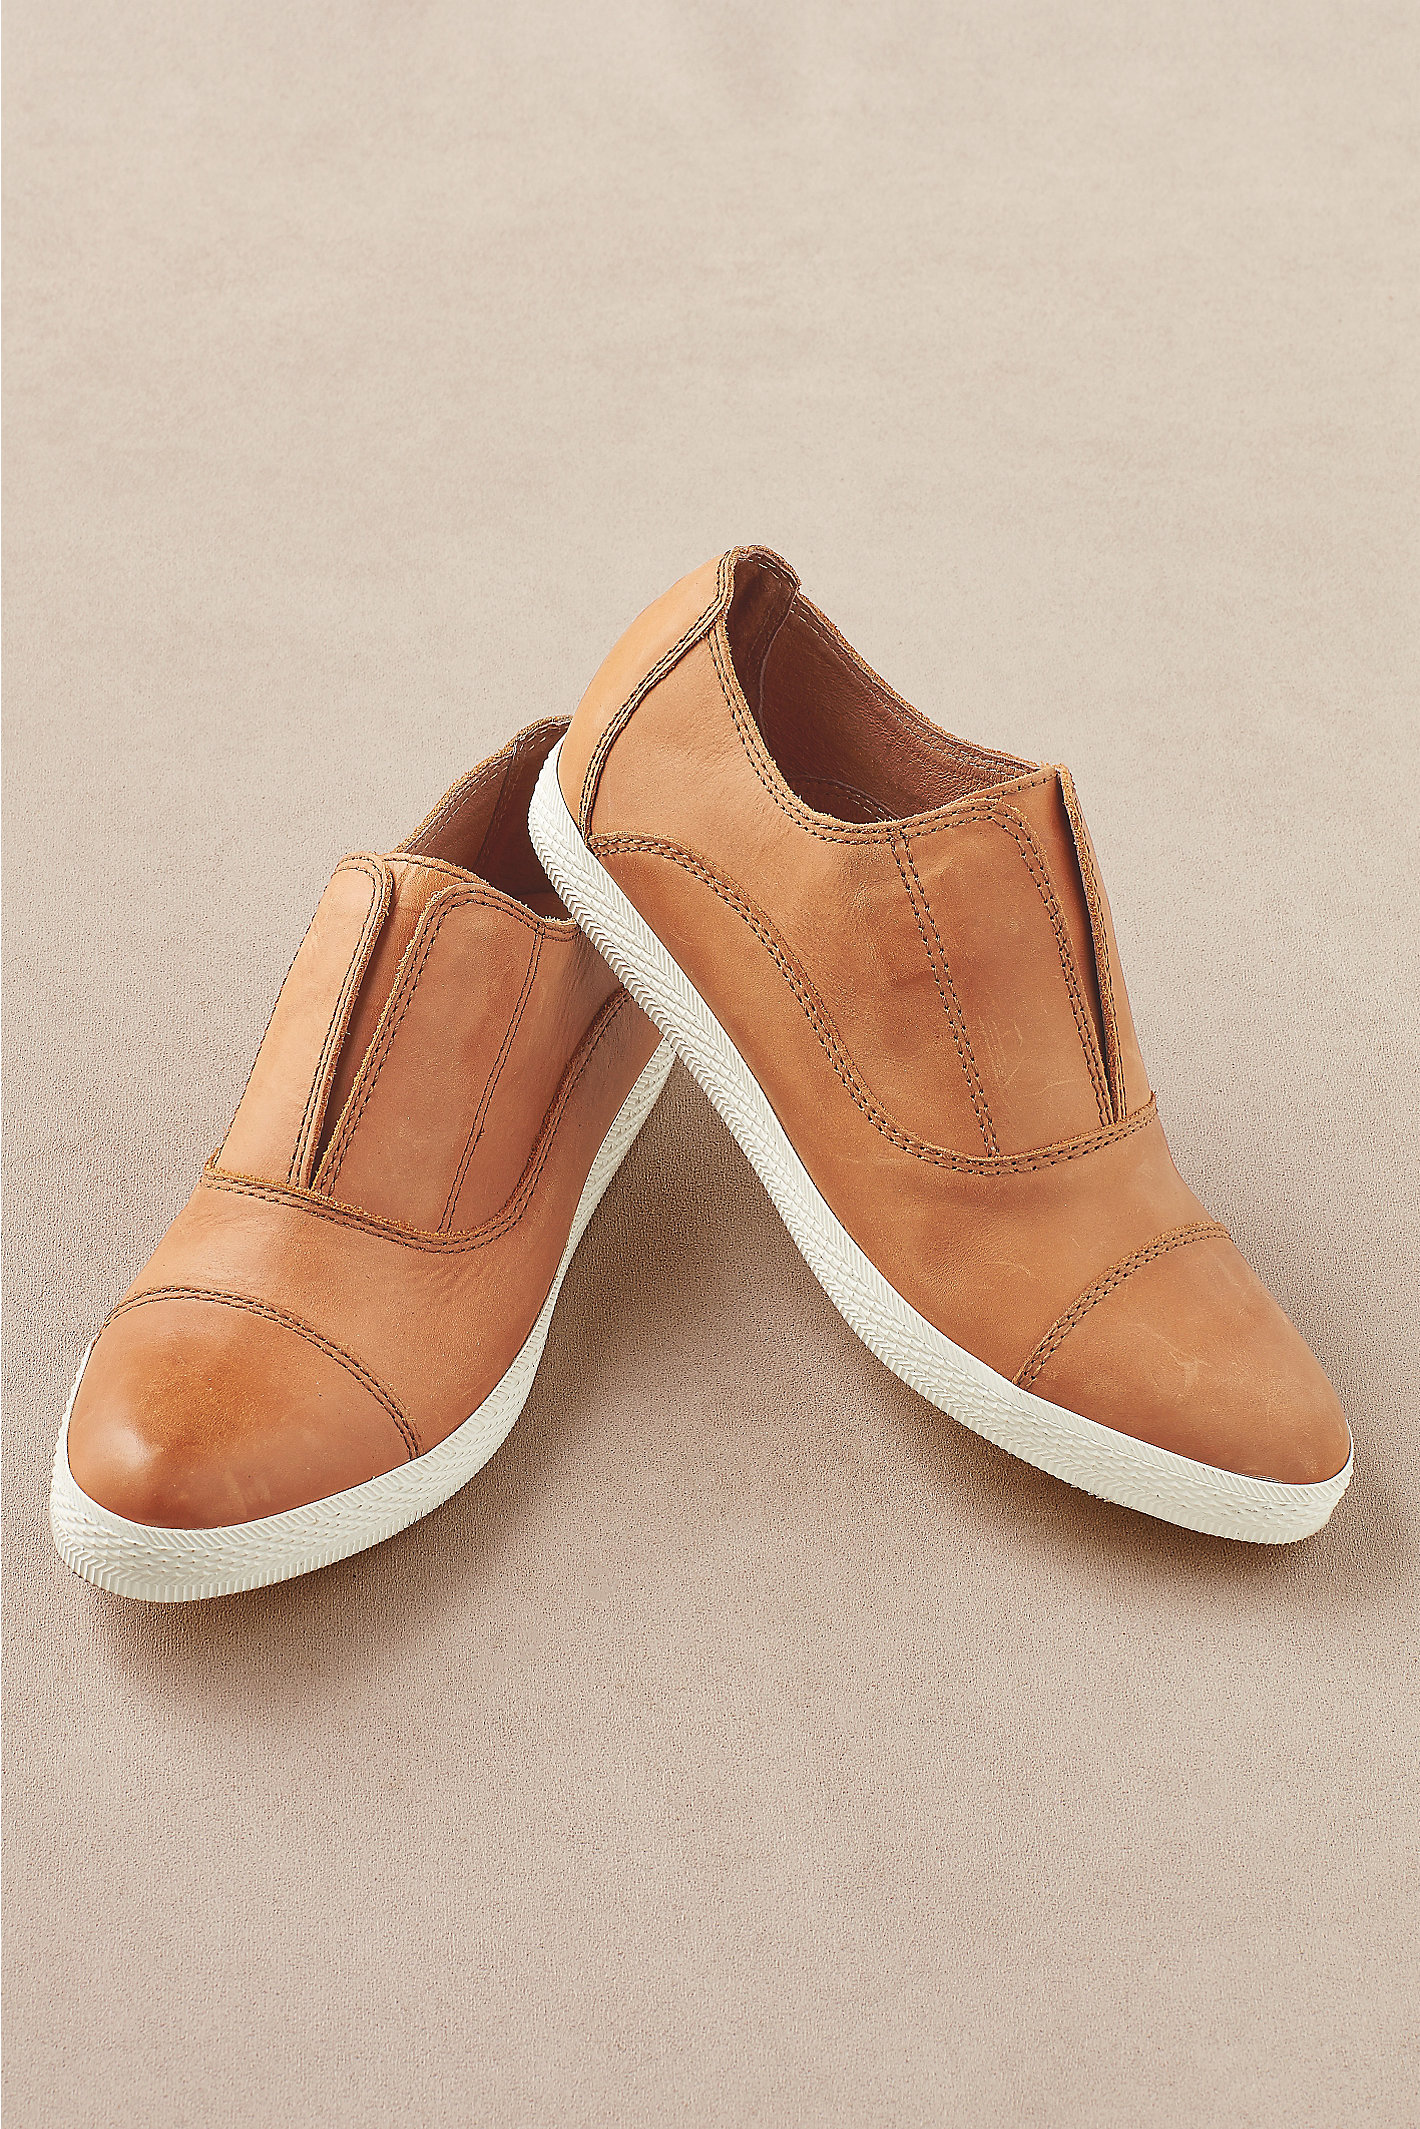 Blakely Shoes